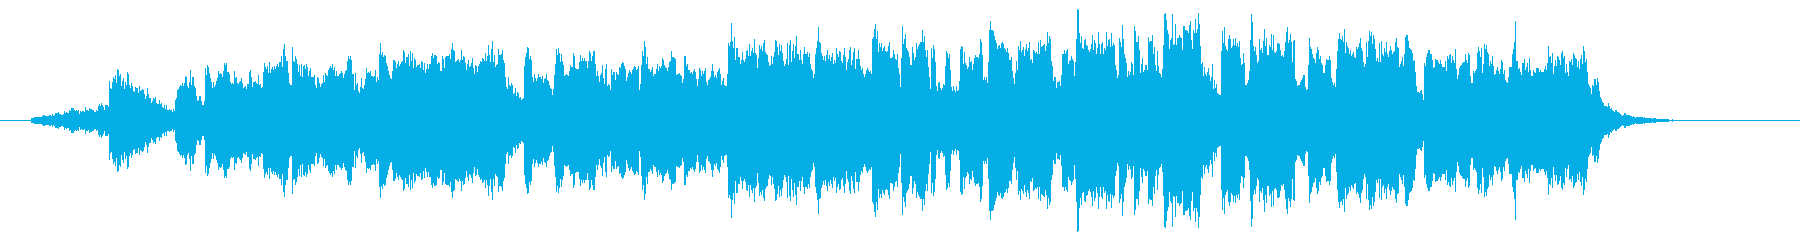 BGM of the beginning of a magnificent journey's reproduced waveform